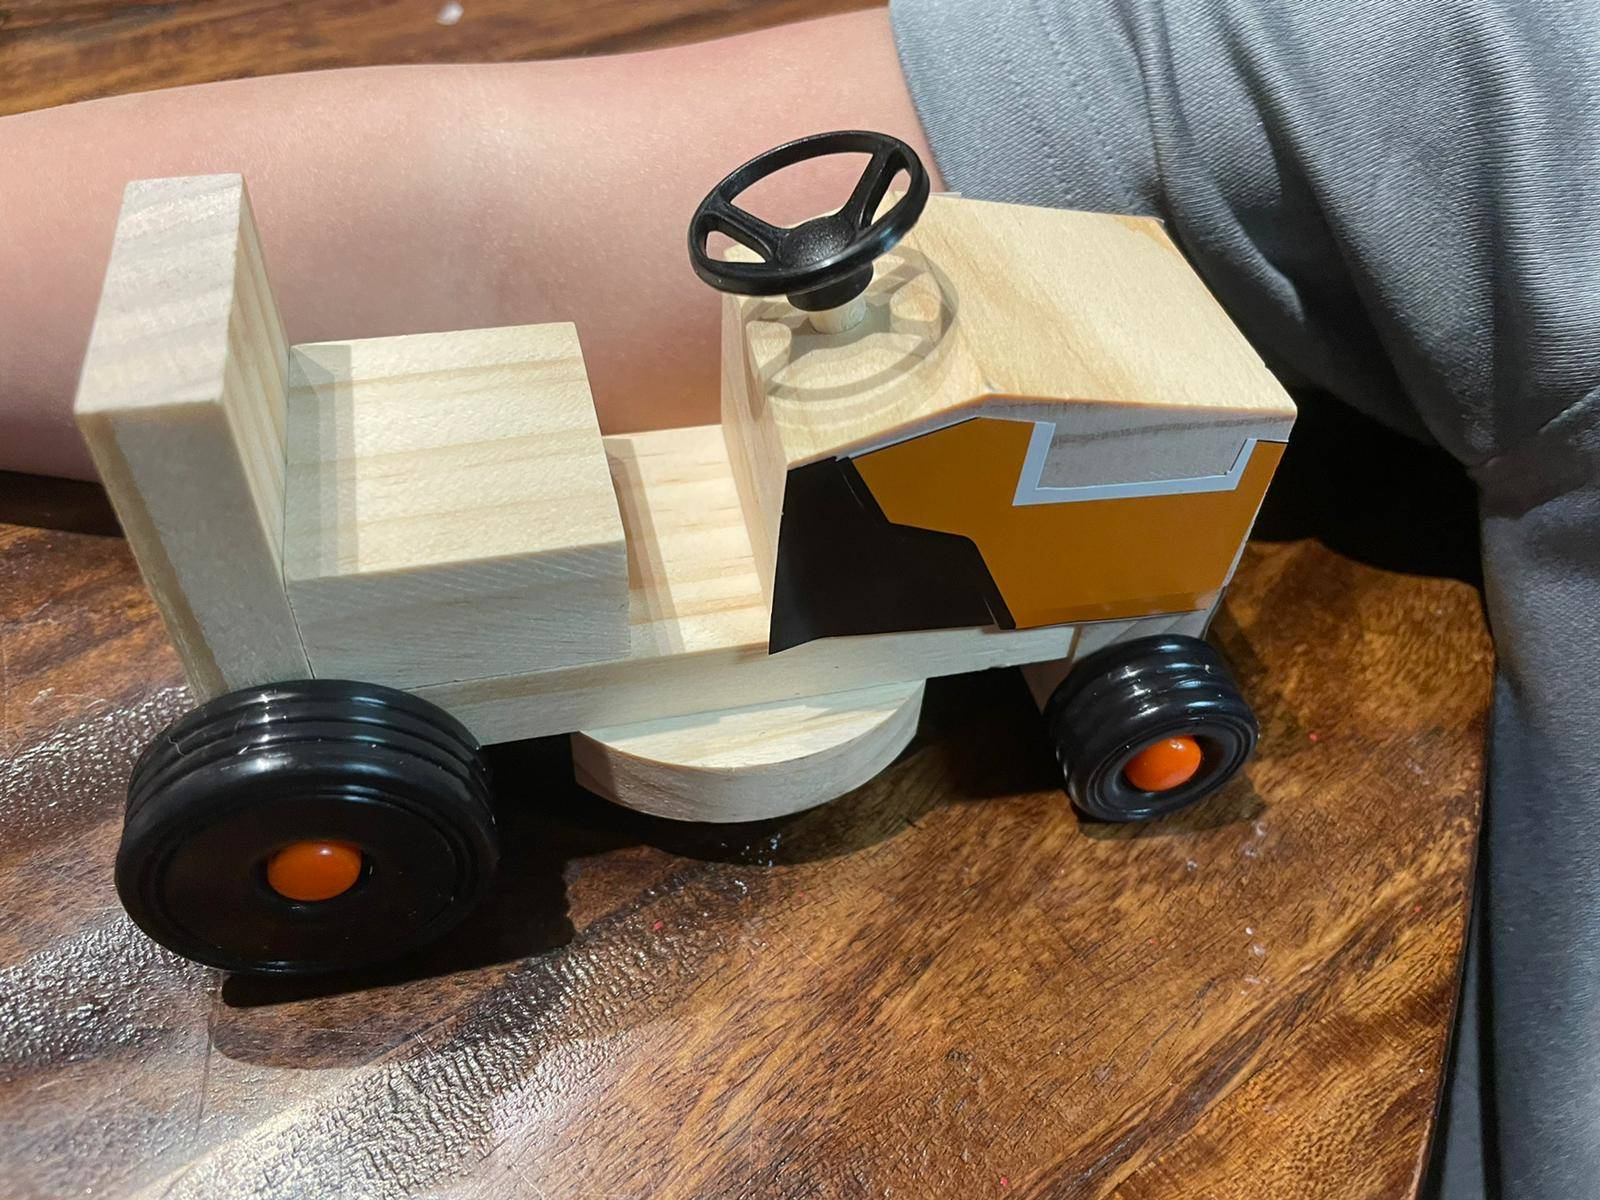 A student displays their tractor made from their Home Depot Kit.